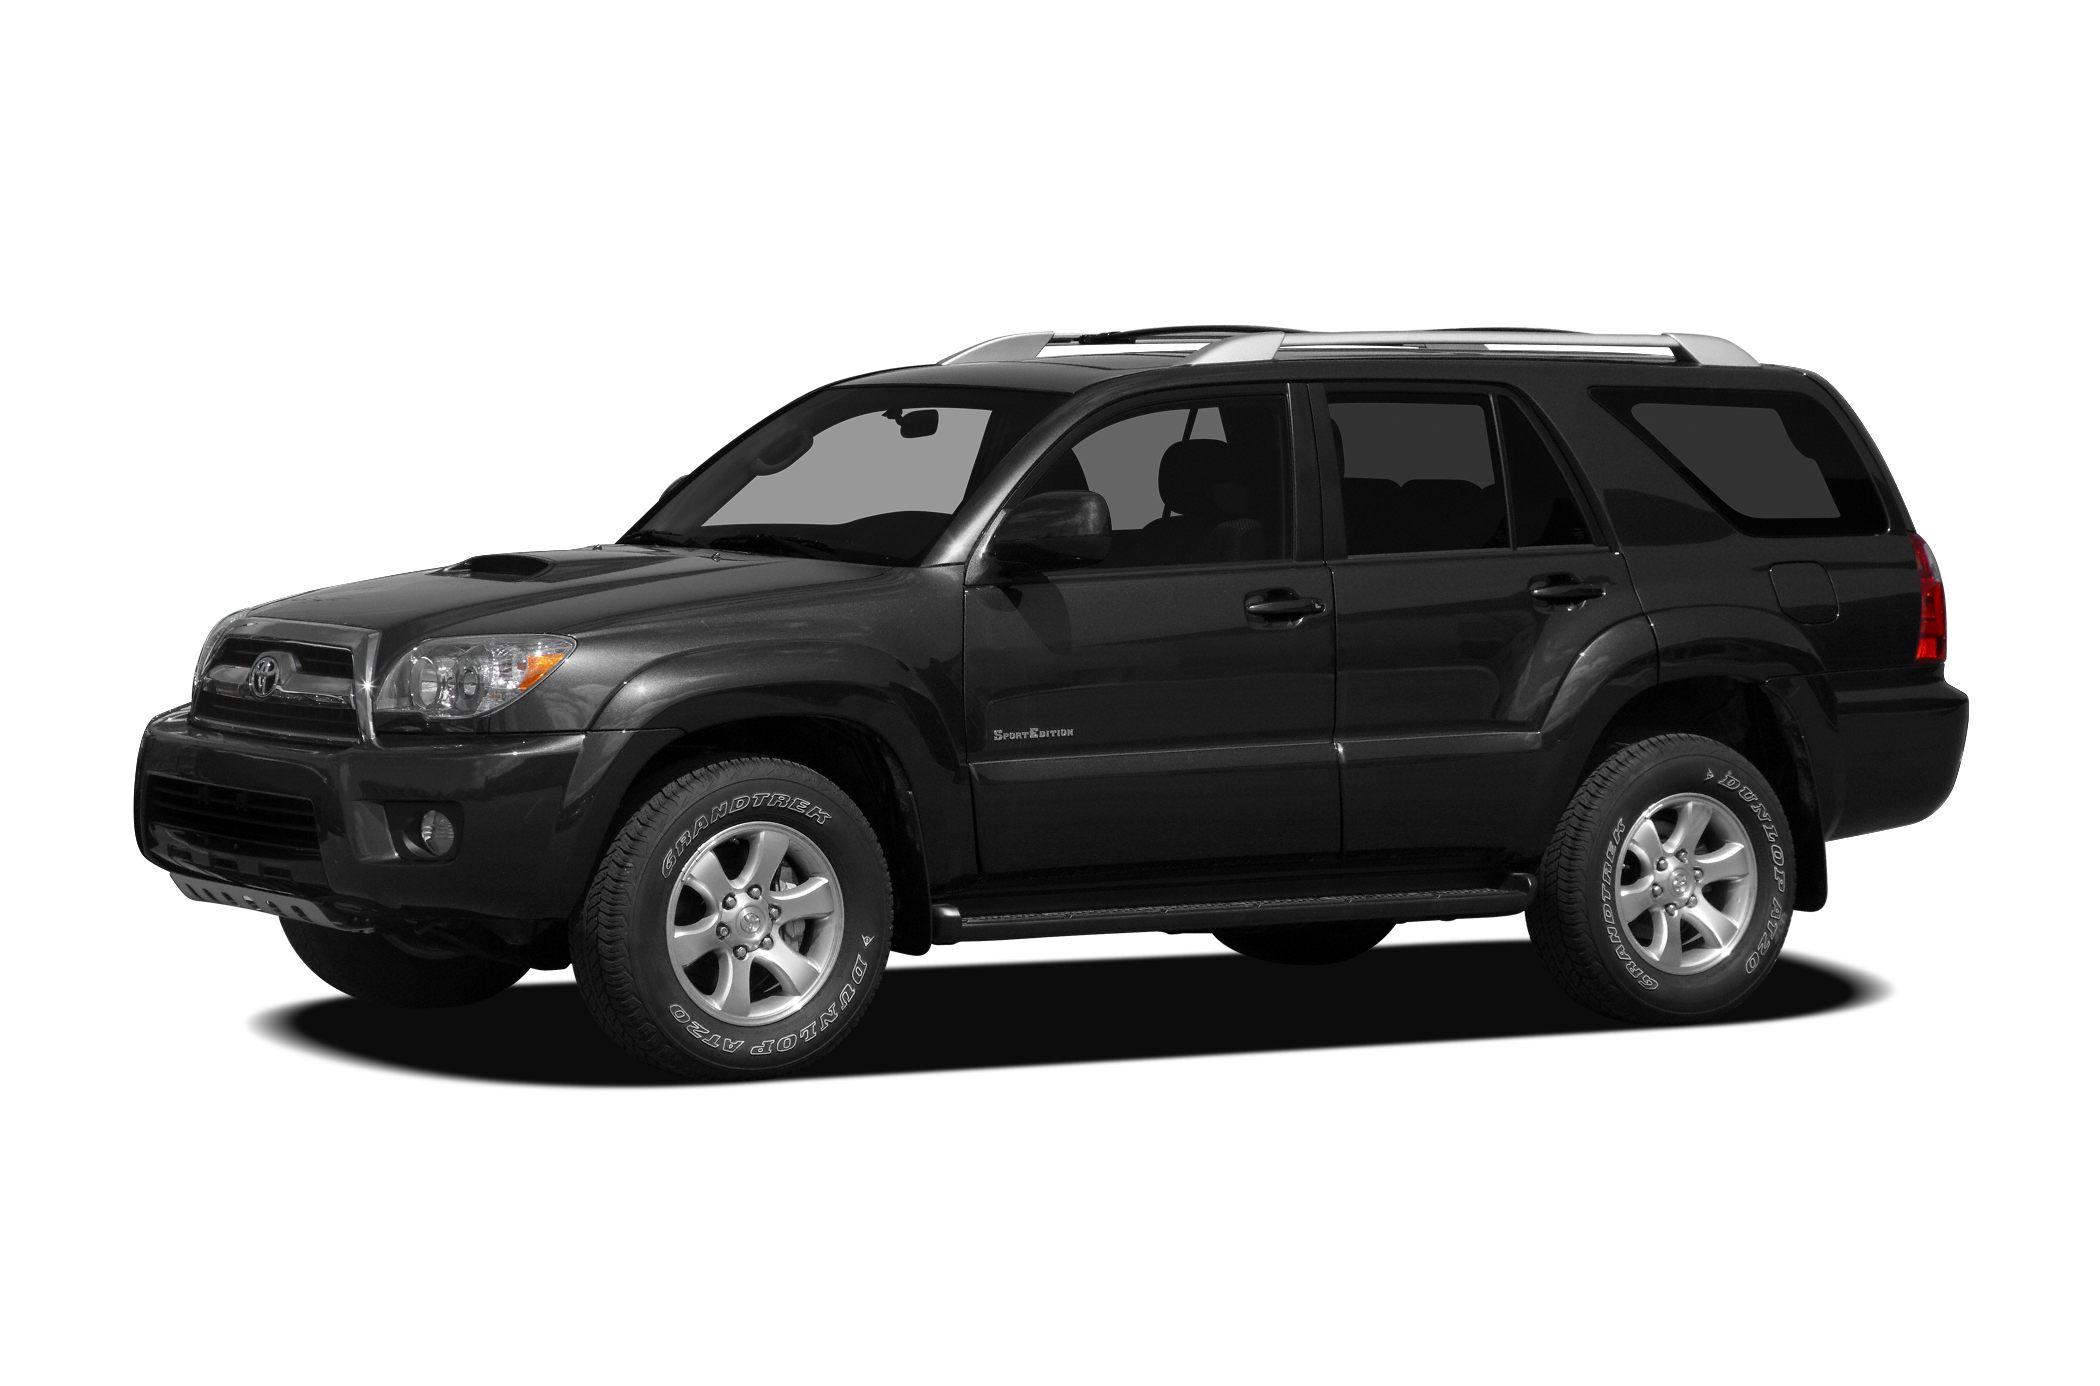 2009 Toyota 4Runner SR5 SUV for sale in Casa Grande for $14,795 with 126,424 miles